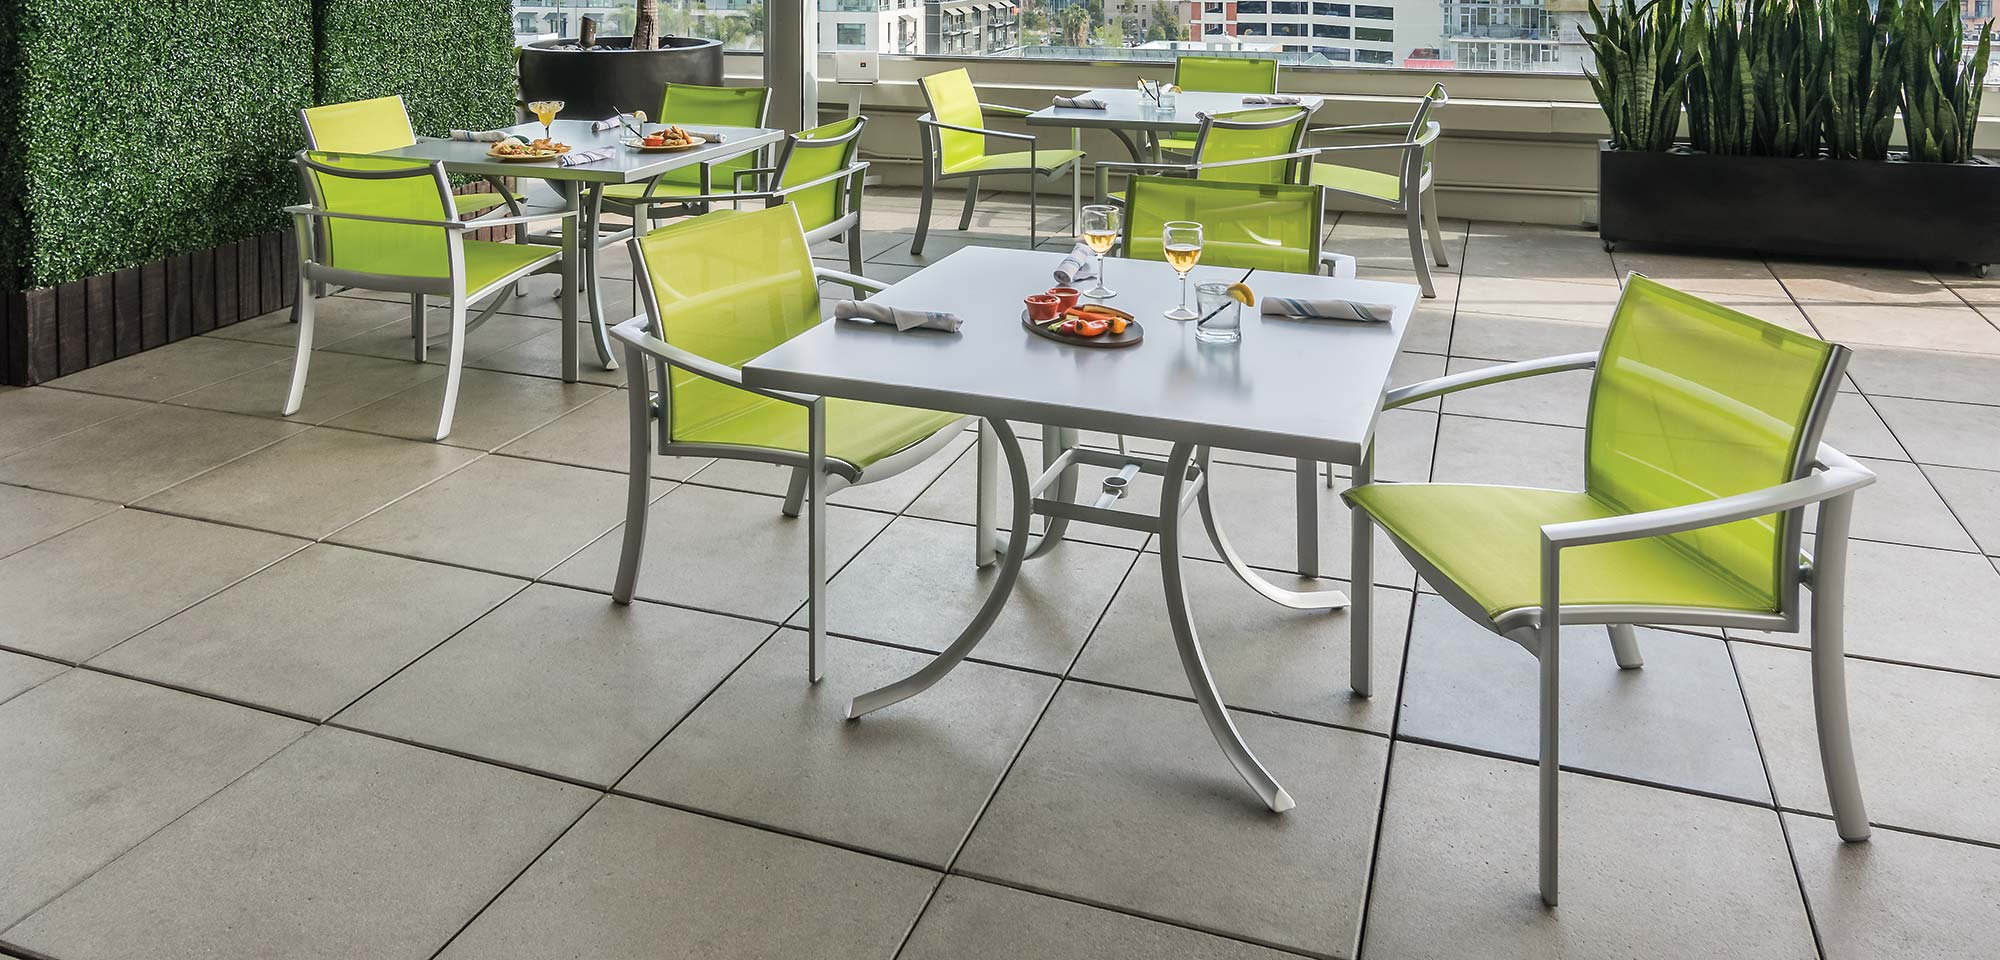 Commercial Outdoor Furniture | Patio Furniture | Outdoor Furniture ...